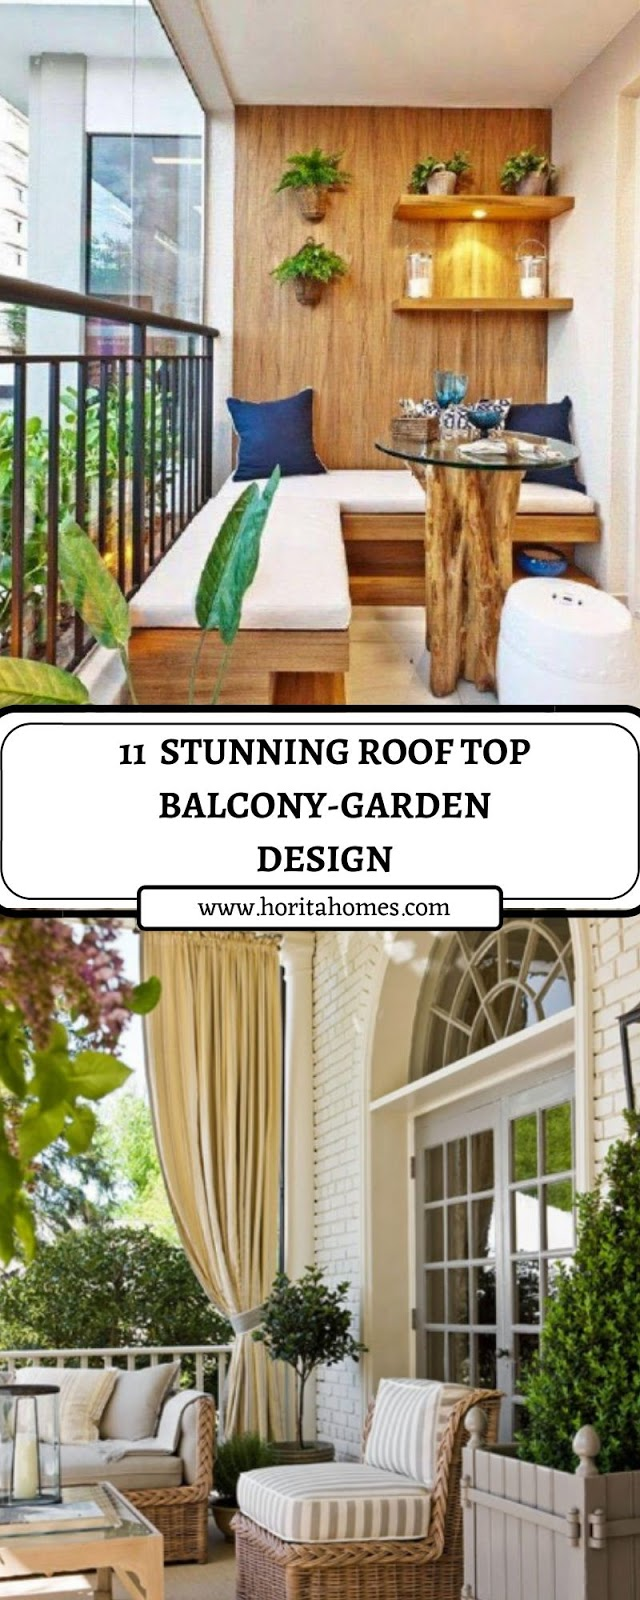 11  STUNNING ROOF TOP BALCONY-GARDEN DESIGN